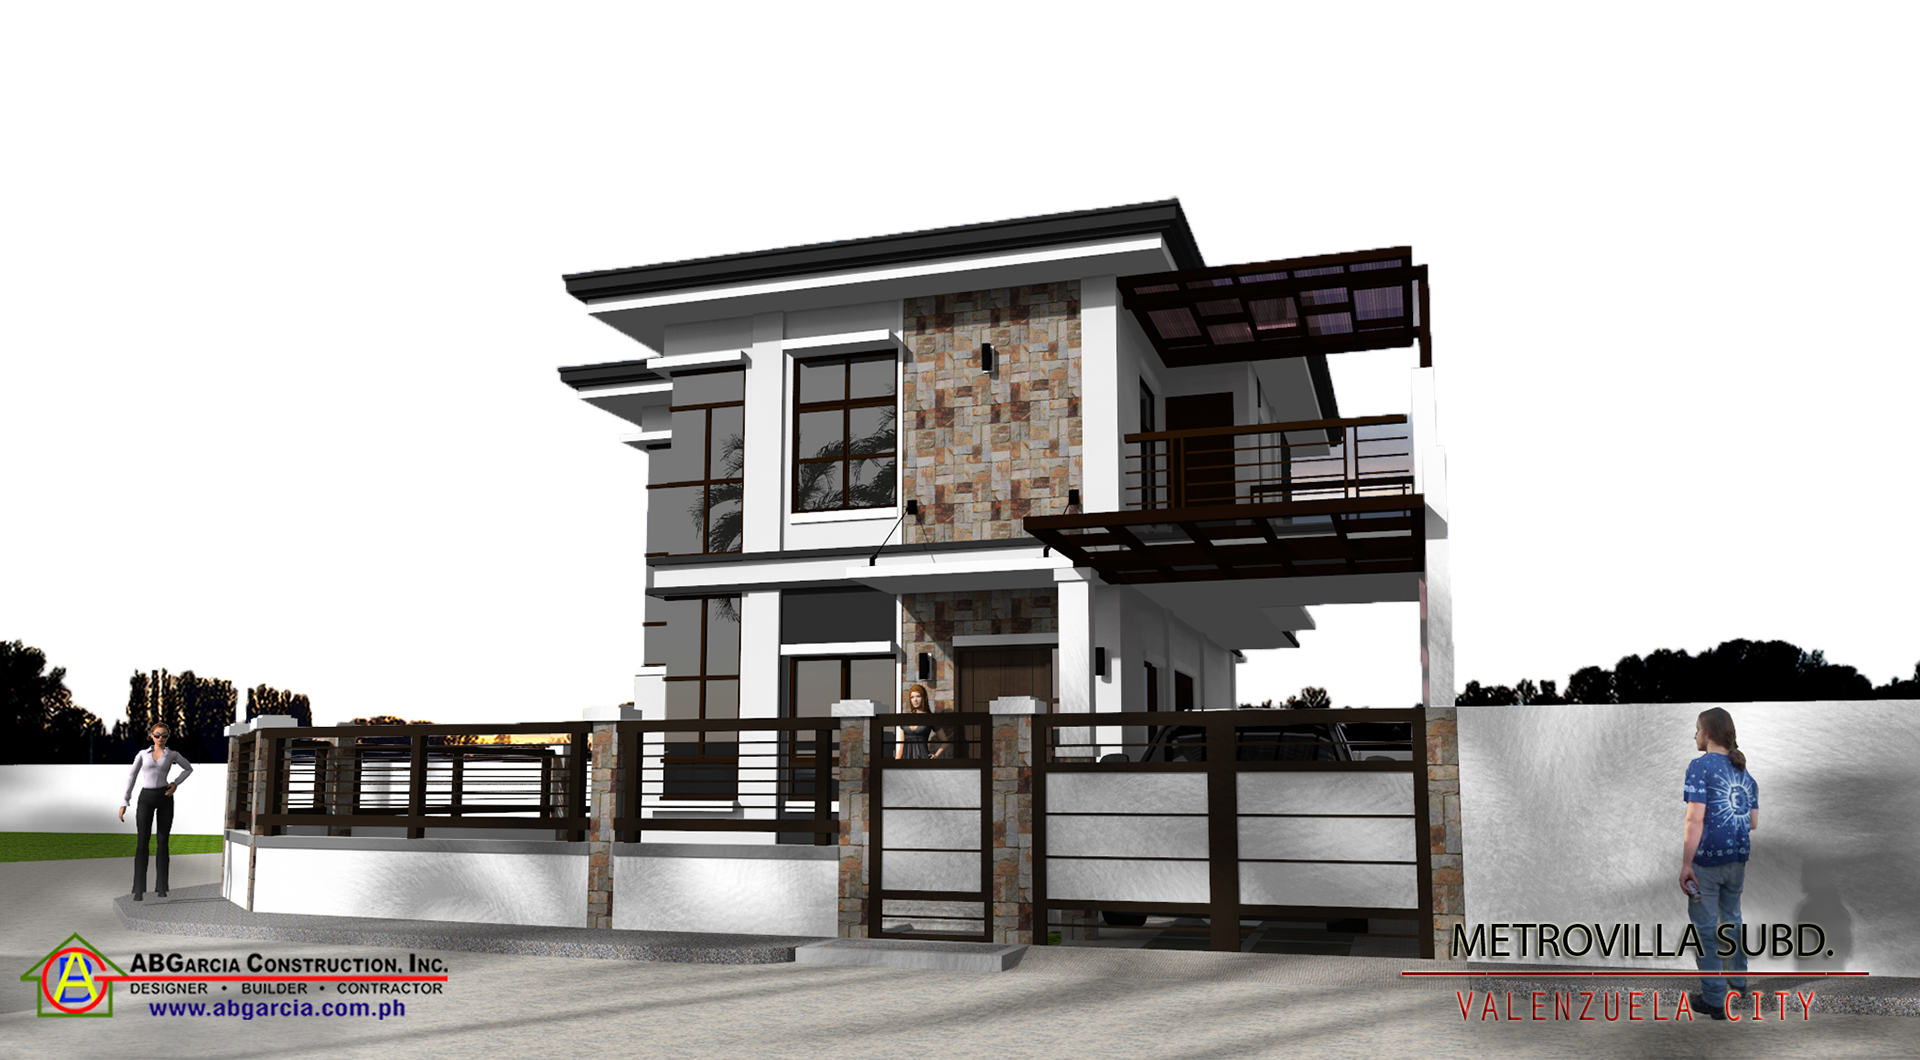 Ab garcia construction inc designer builder Design house inc